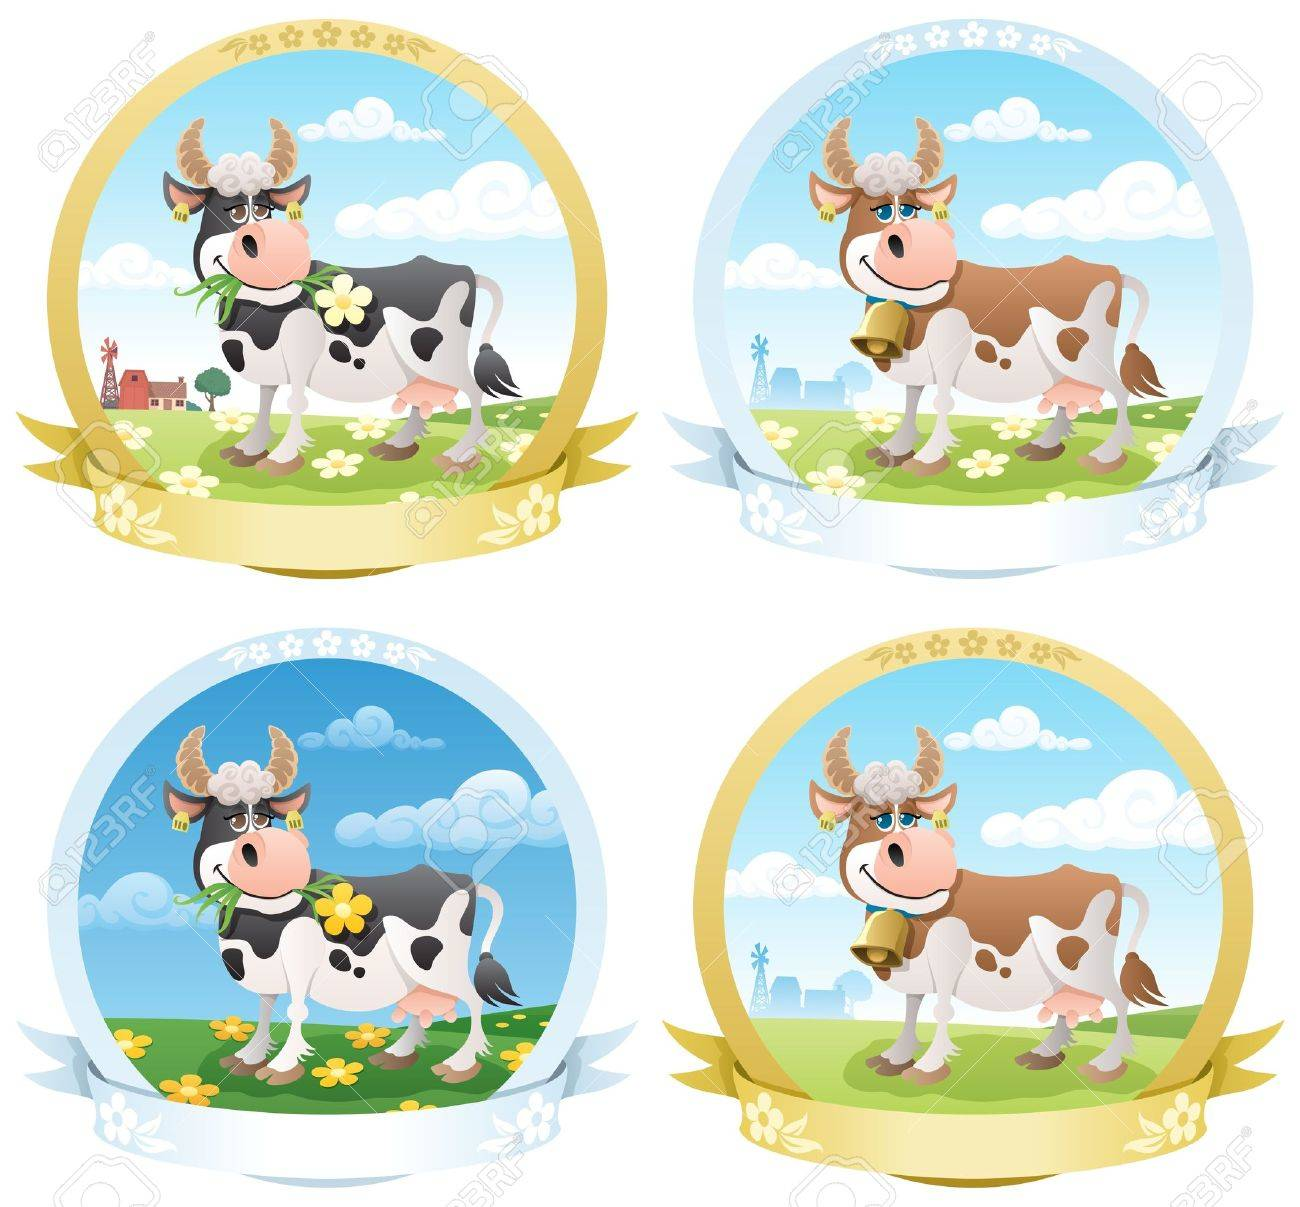 4 dairy products labels.  No transparency used. Basic (linear) gradients used. Stock Vector - 9672814